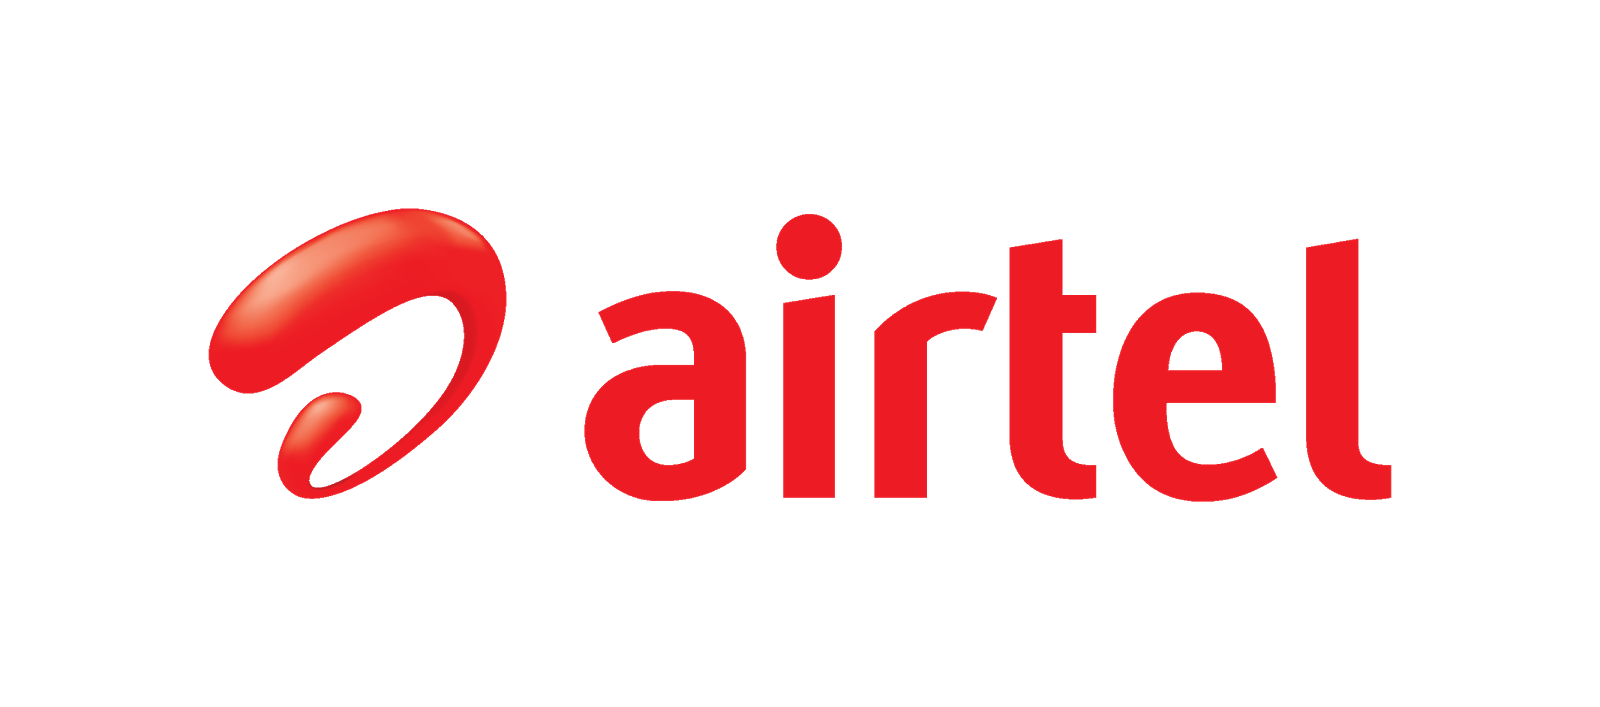 How to enjoy cheaper Airtel bonus offer for as low as N1,500 for 5.5G and N2,000 for 7GB